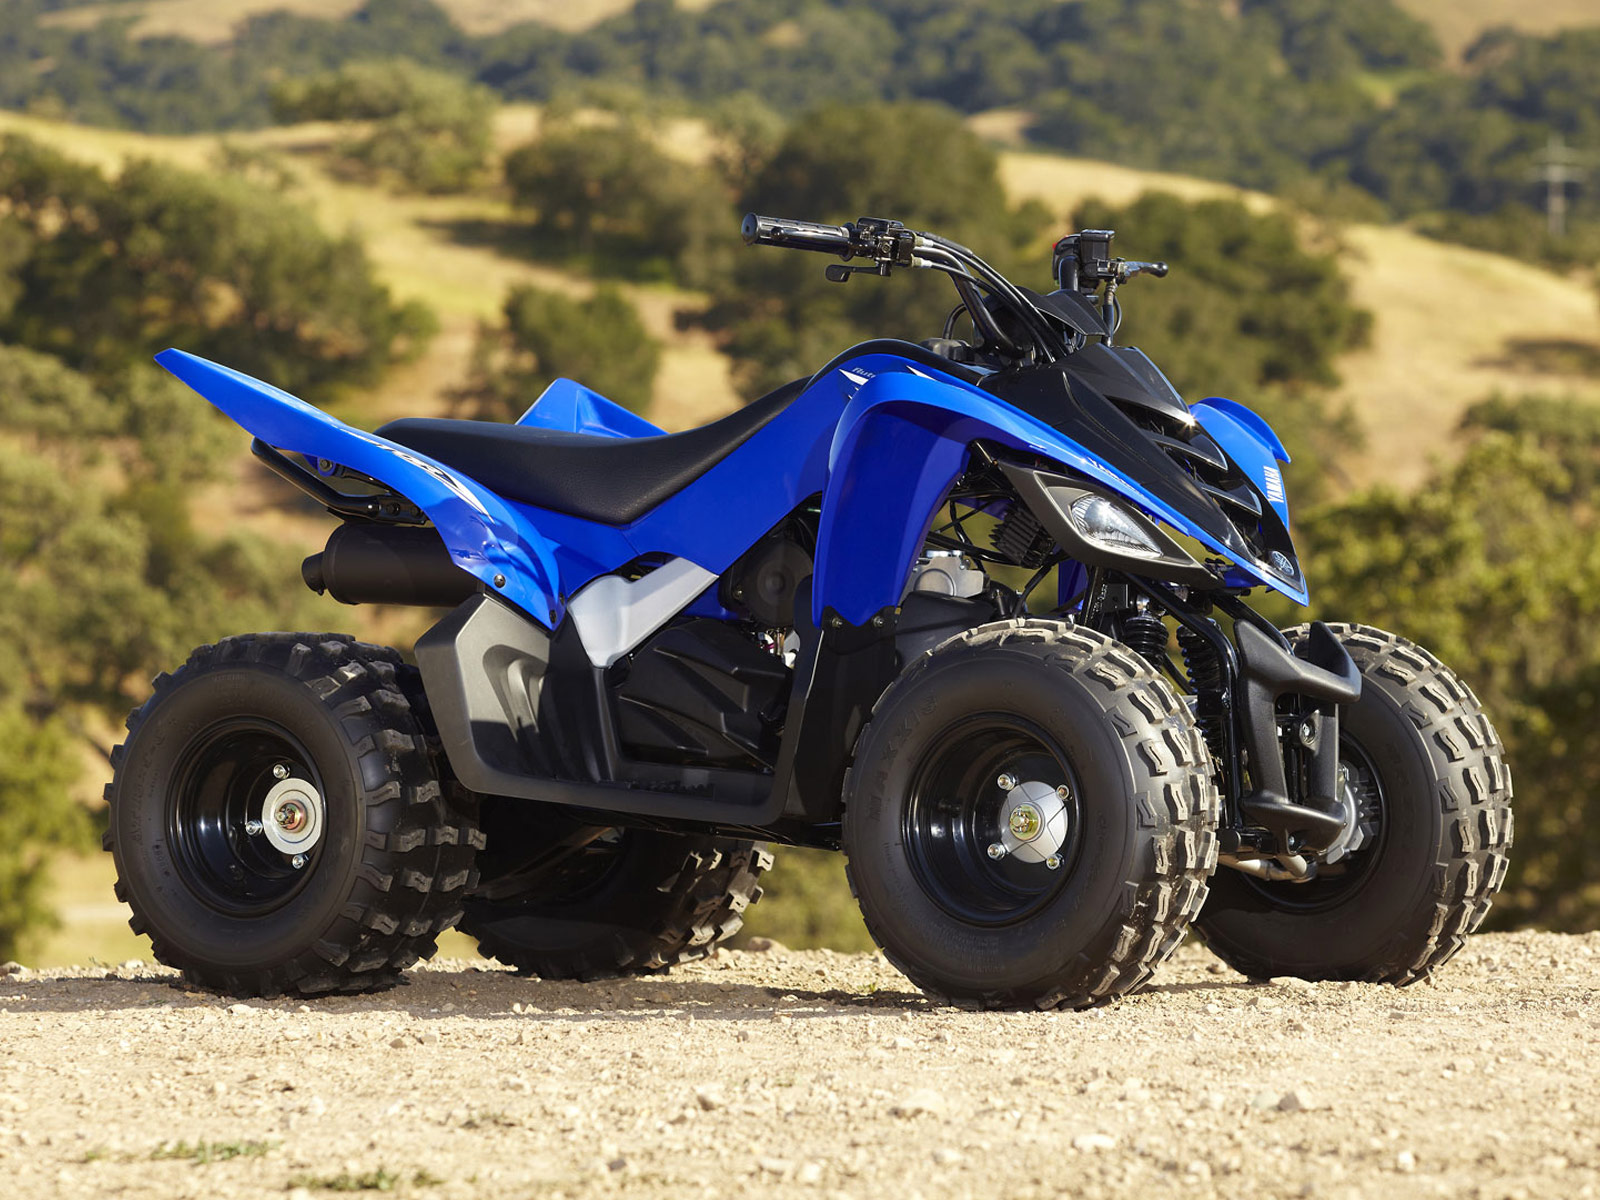 2011 yamaha raptor 90 pictures specs atv accident lawyers. Black Bedroom Furniture Sets. Home Design Ideas